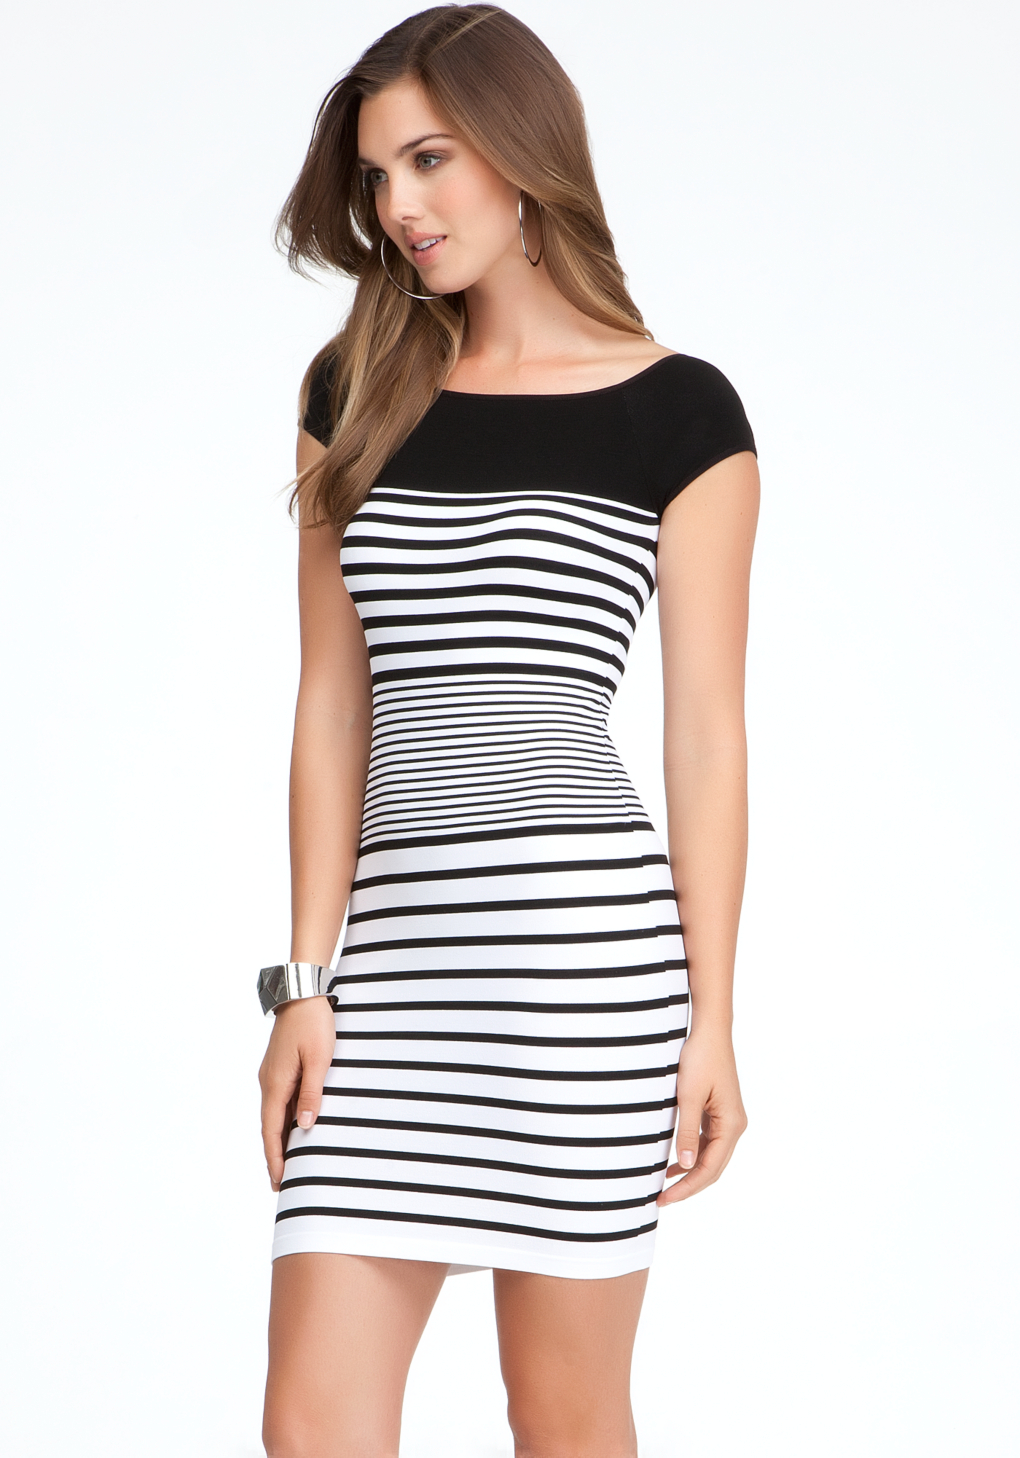 Bebe black and white colorblock dress